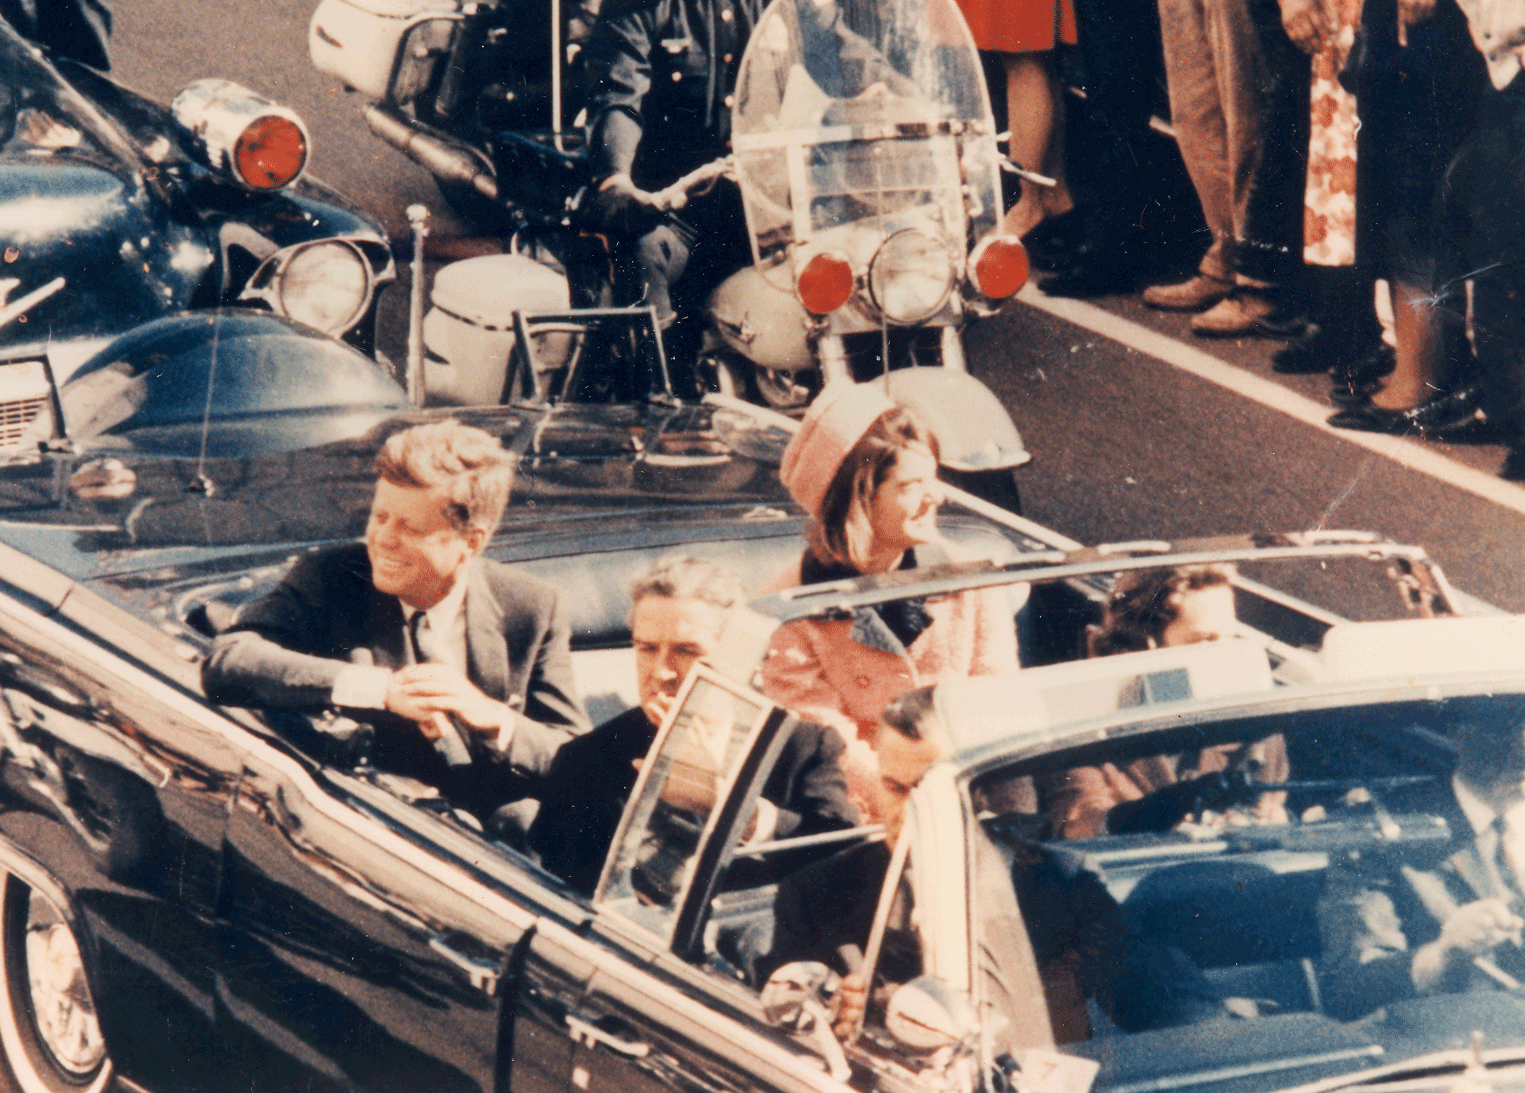 an analysis of the debate about kennedys assassination in the united states